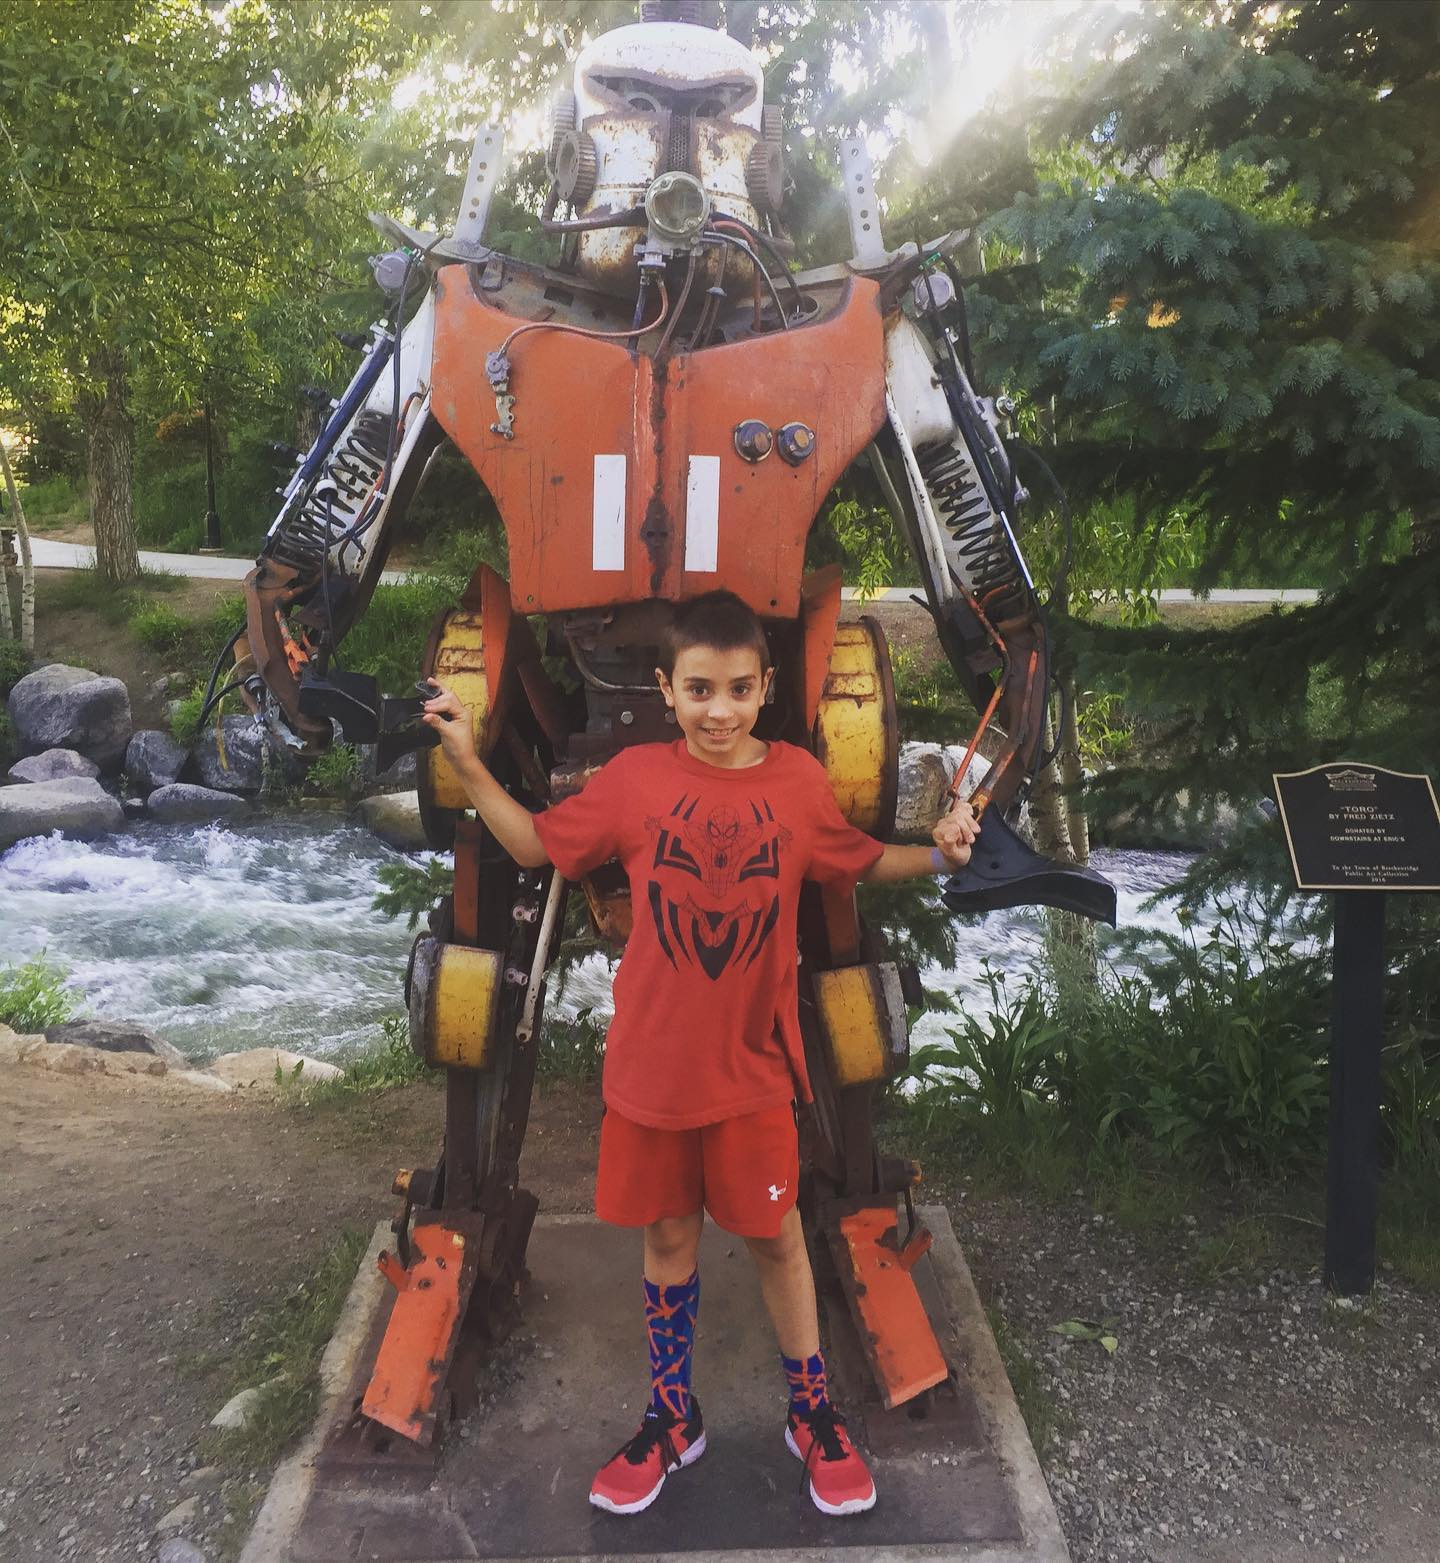 "Take a walk down Breckenridge downtown area- go see the river roaring by and look for this robot named ""Toro"". We had a nice family outing- hope you can enjoy too! #toro #breckenridgemainstreet #familyouting #familyfun"